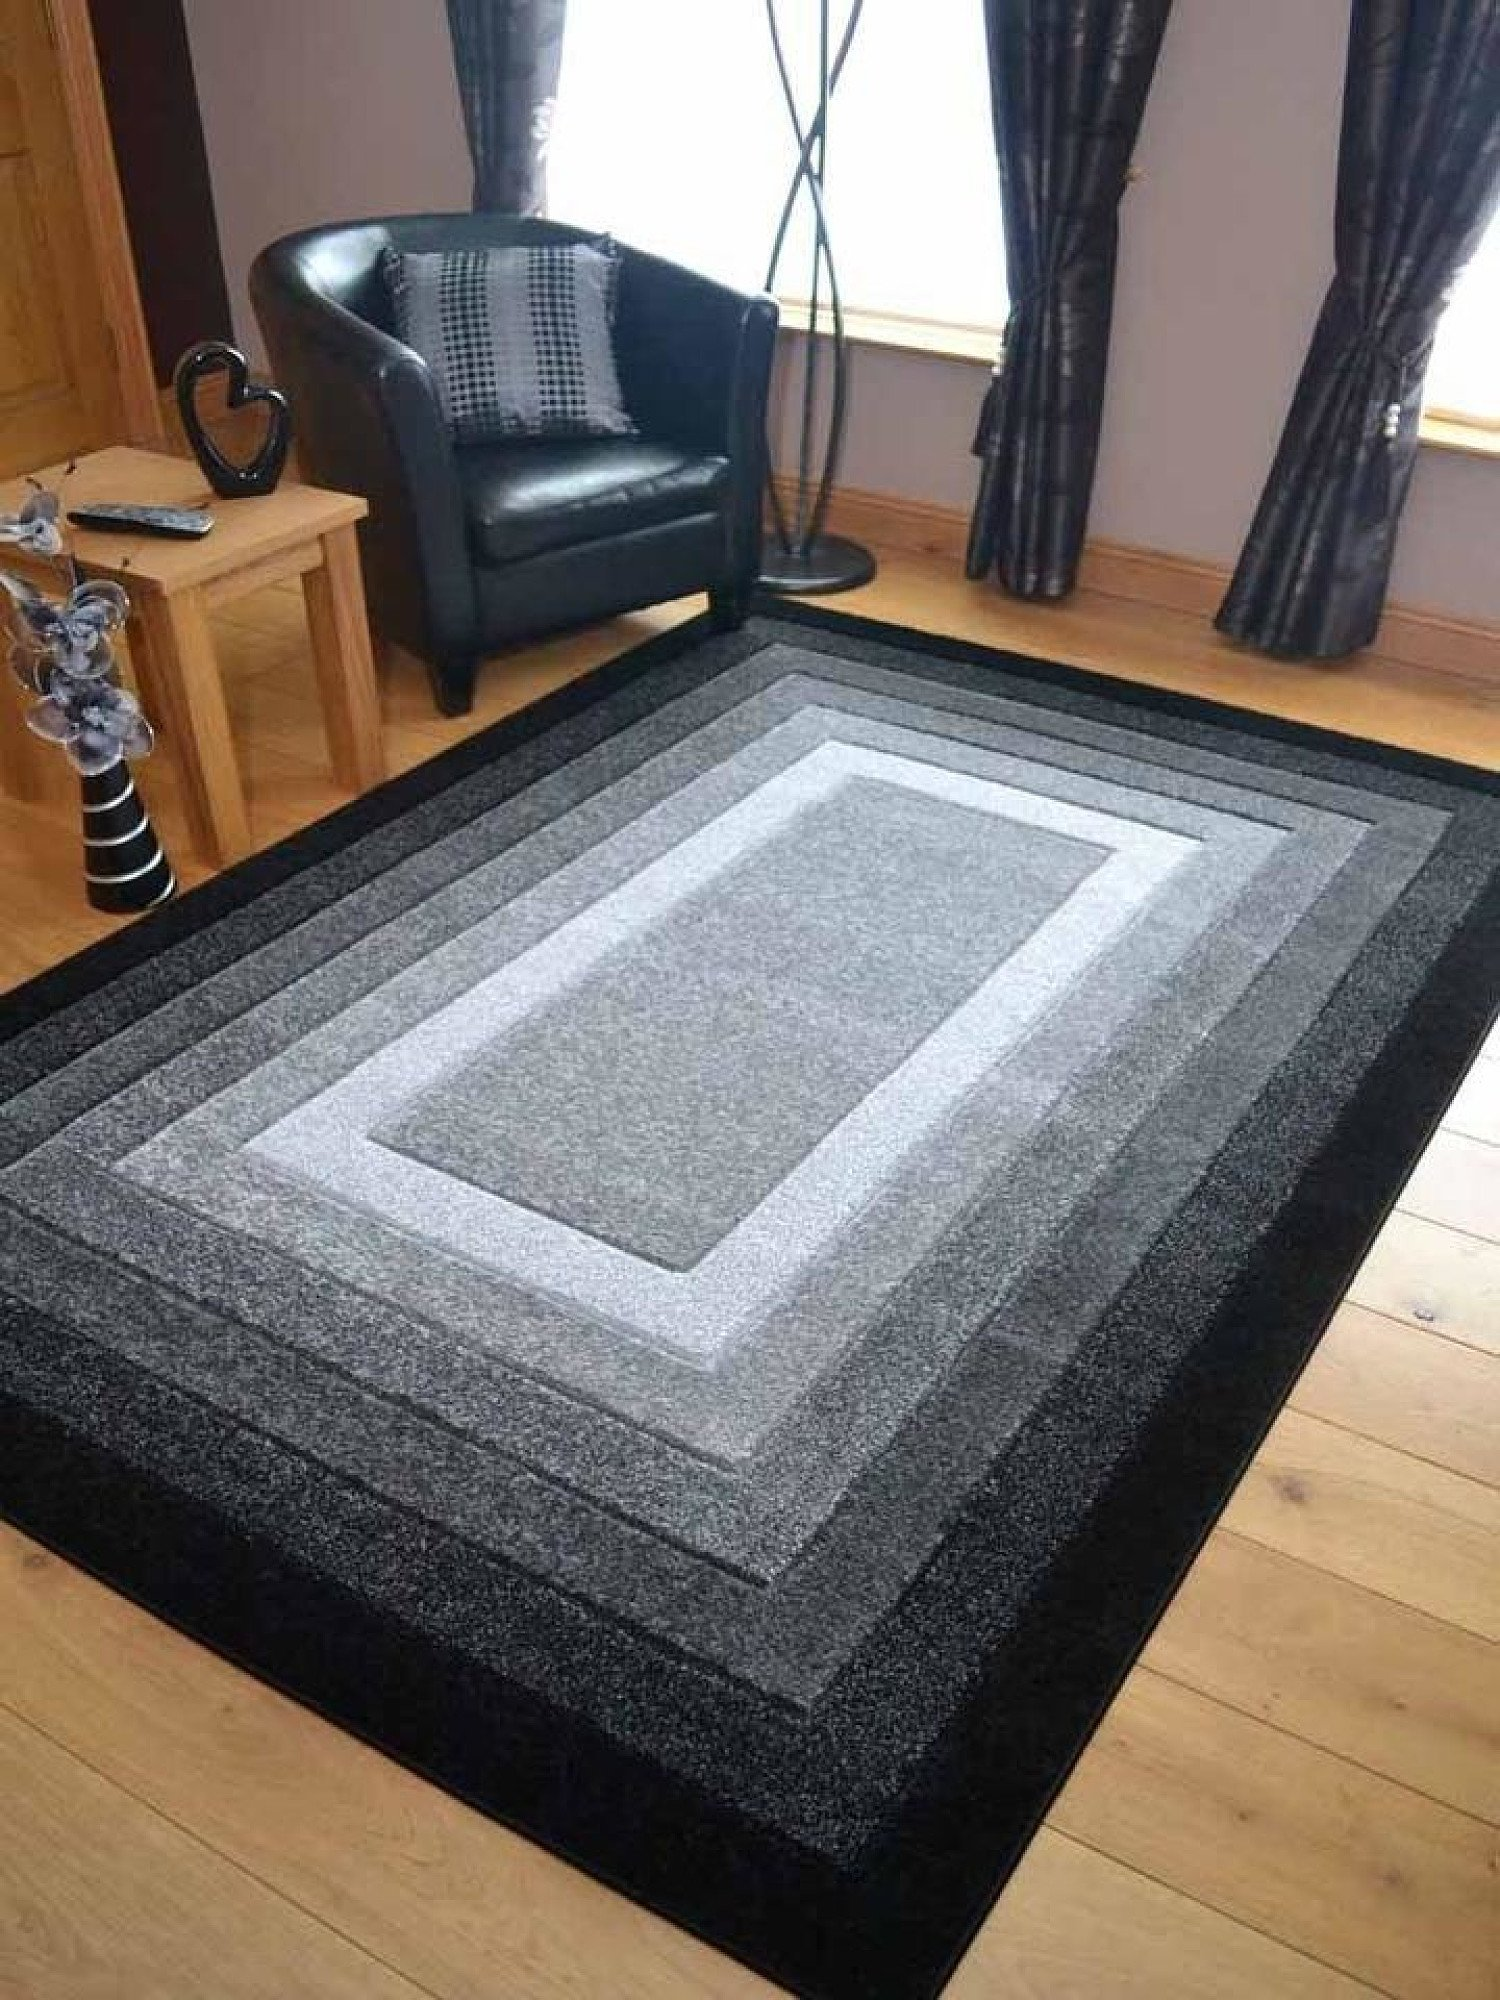 Sahara Plain Border Black Rug - different sizes and prices in description - Free Postage